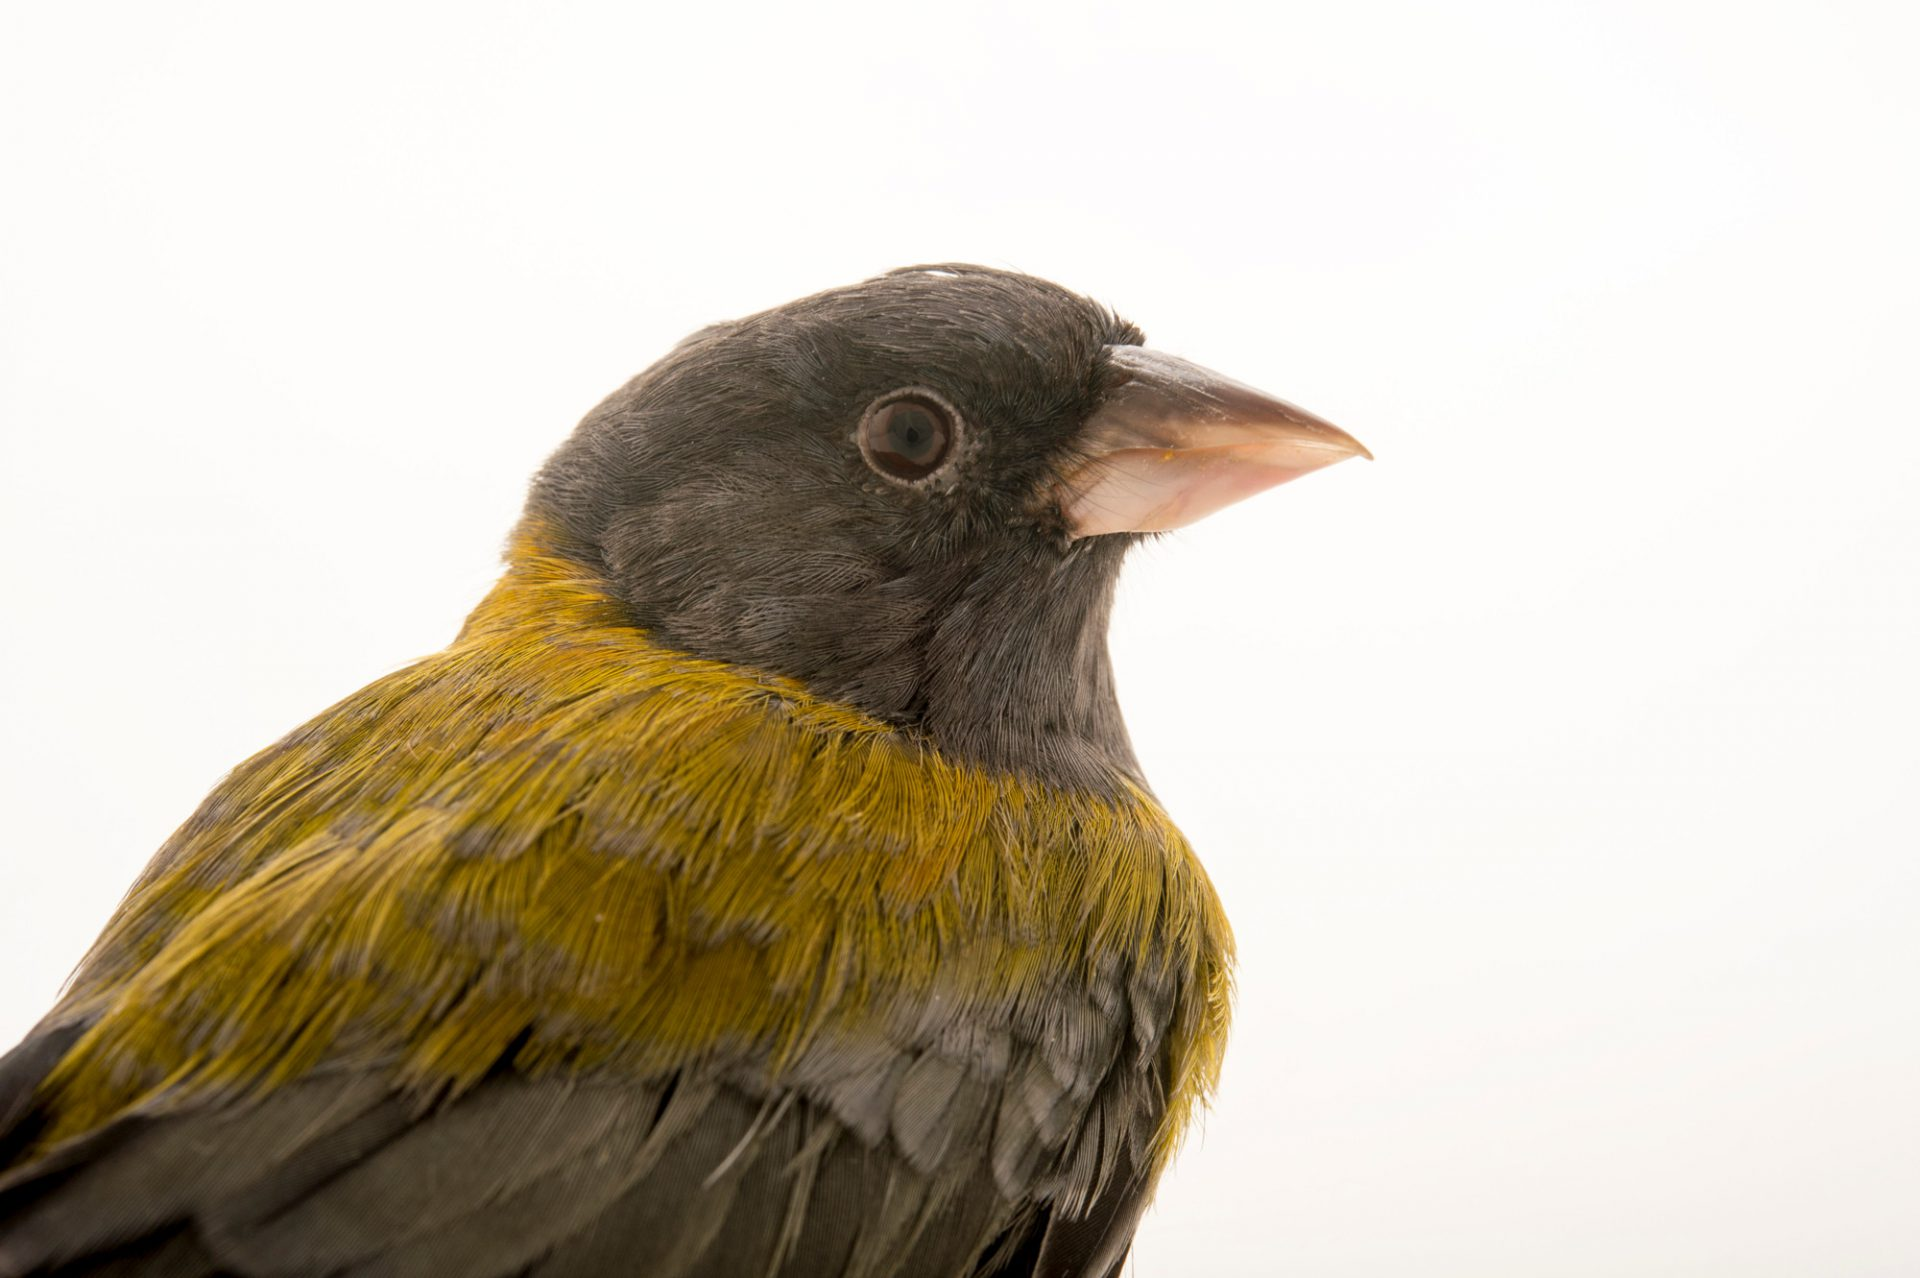 Photo: Patagonian sierra finch (Phrygilus patagonicus) in Choussy, France.